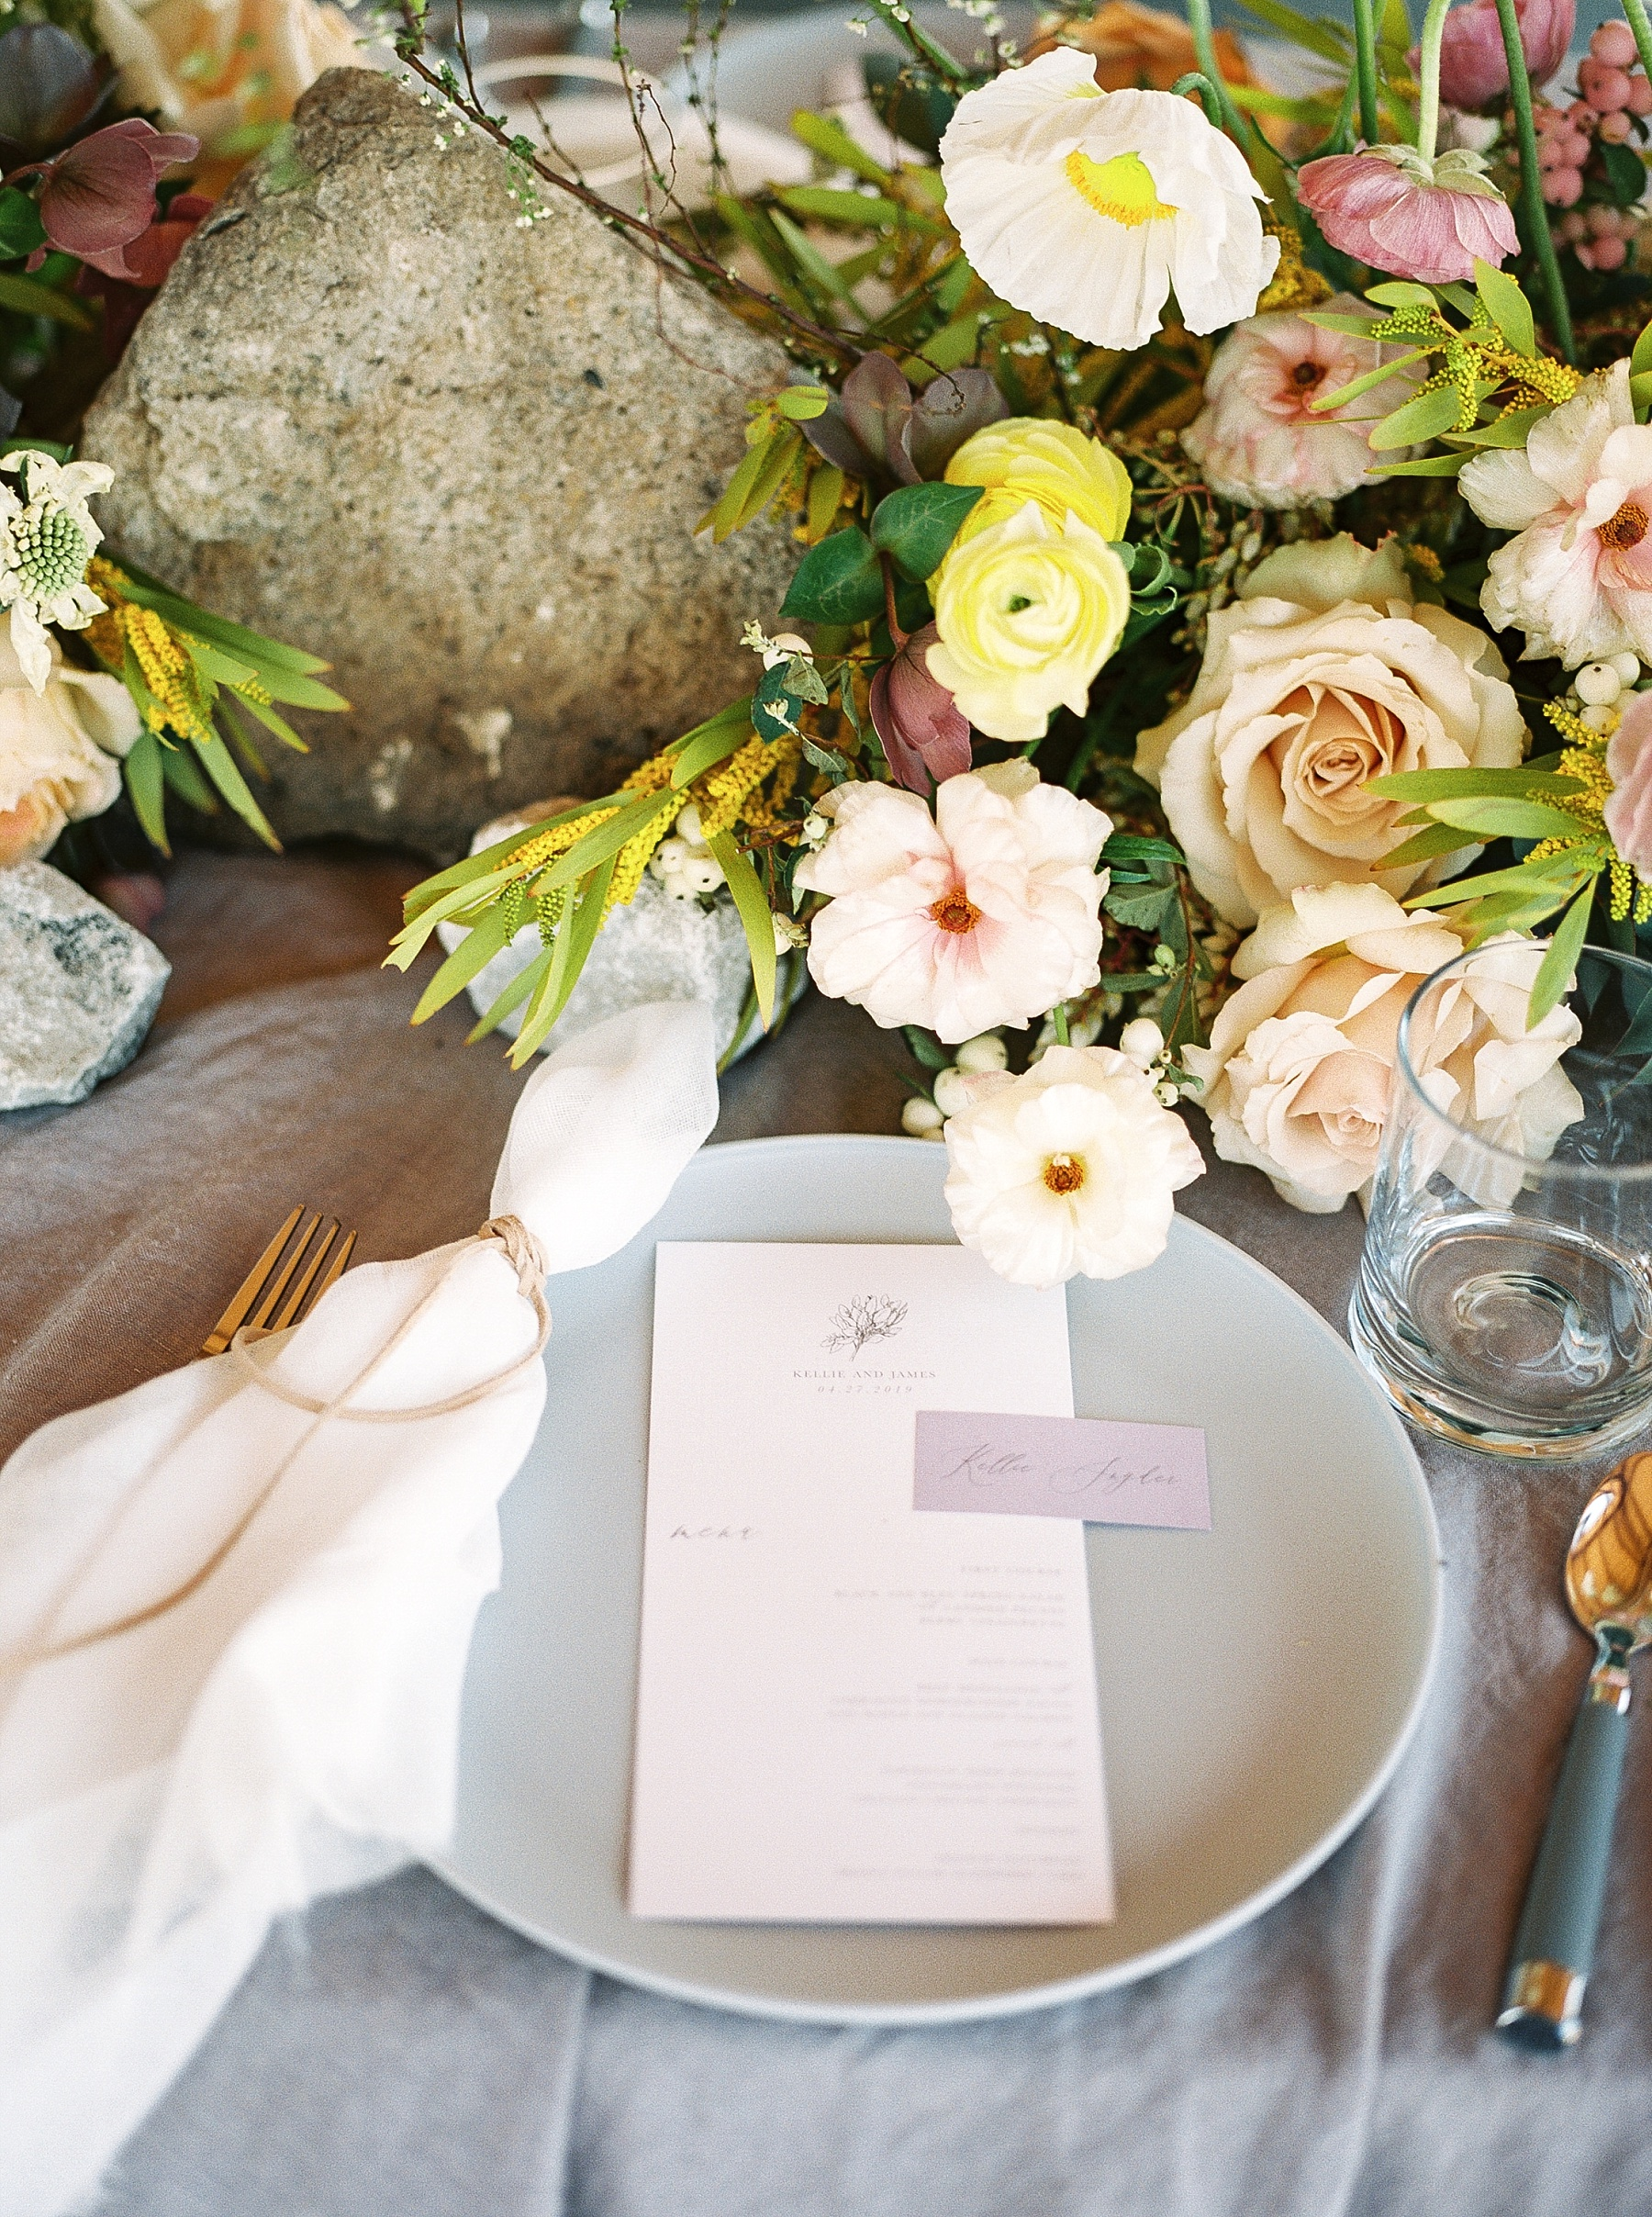 Intimate Lakeside Elopement at Emerson Fields All White Wedding Venue by Kelsi Kliethermes Photography Best Missouri and Maui Wedding Photographer_0010.jpg